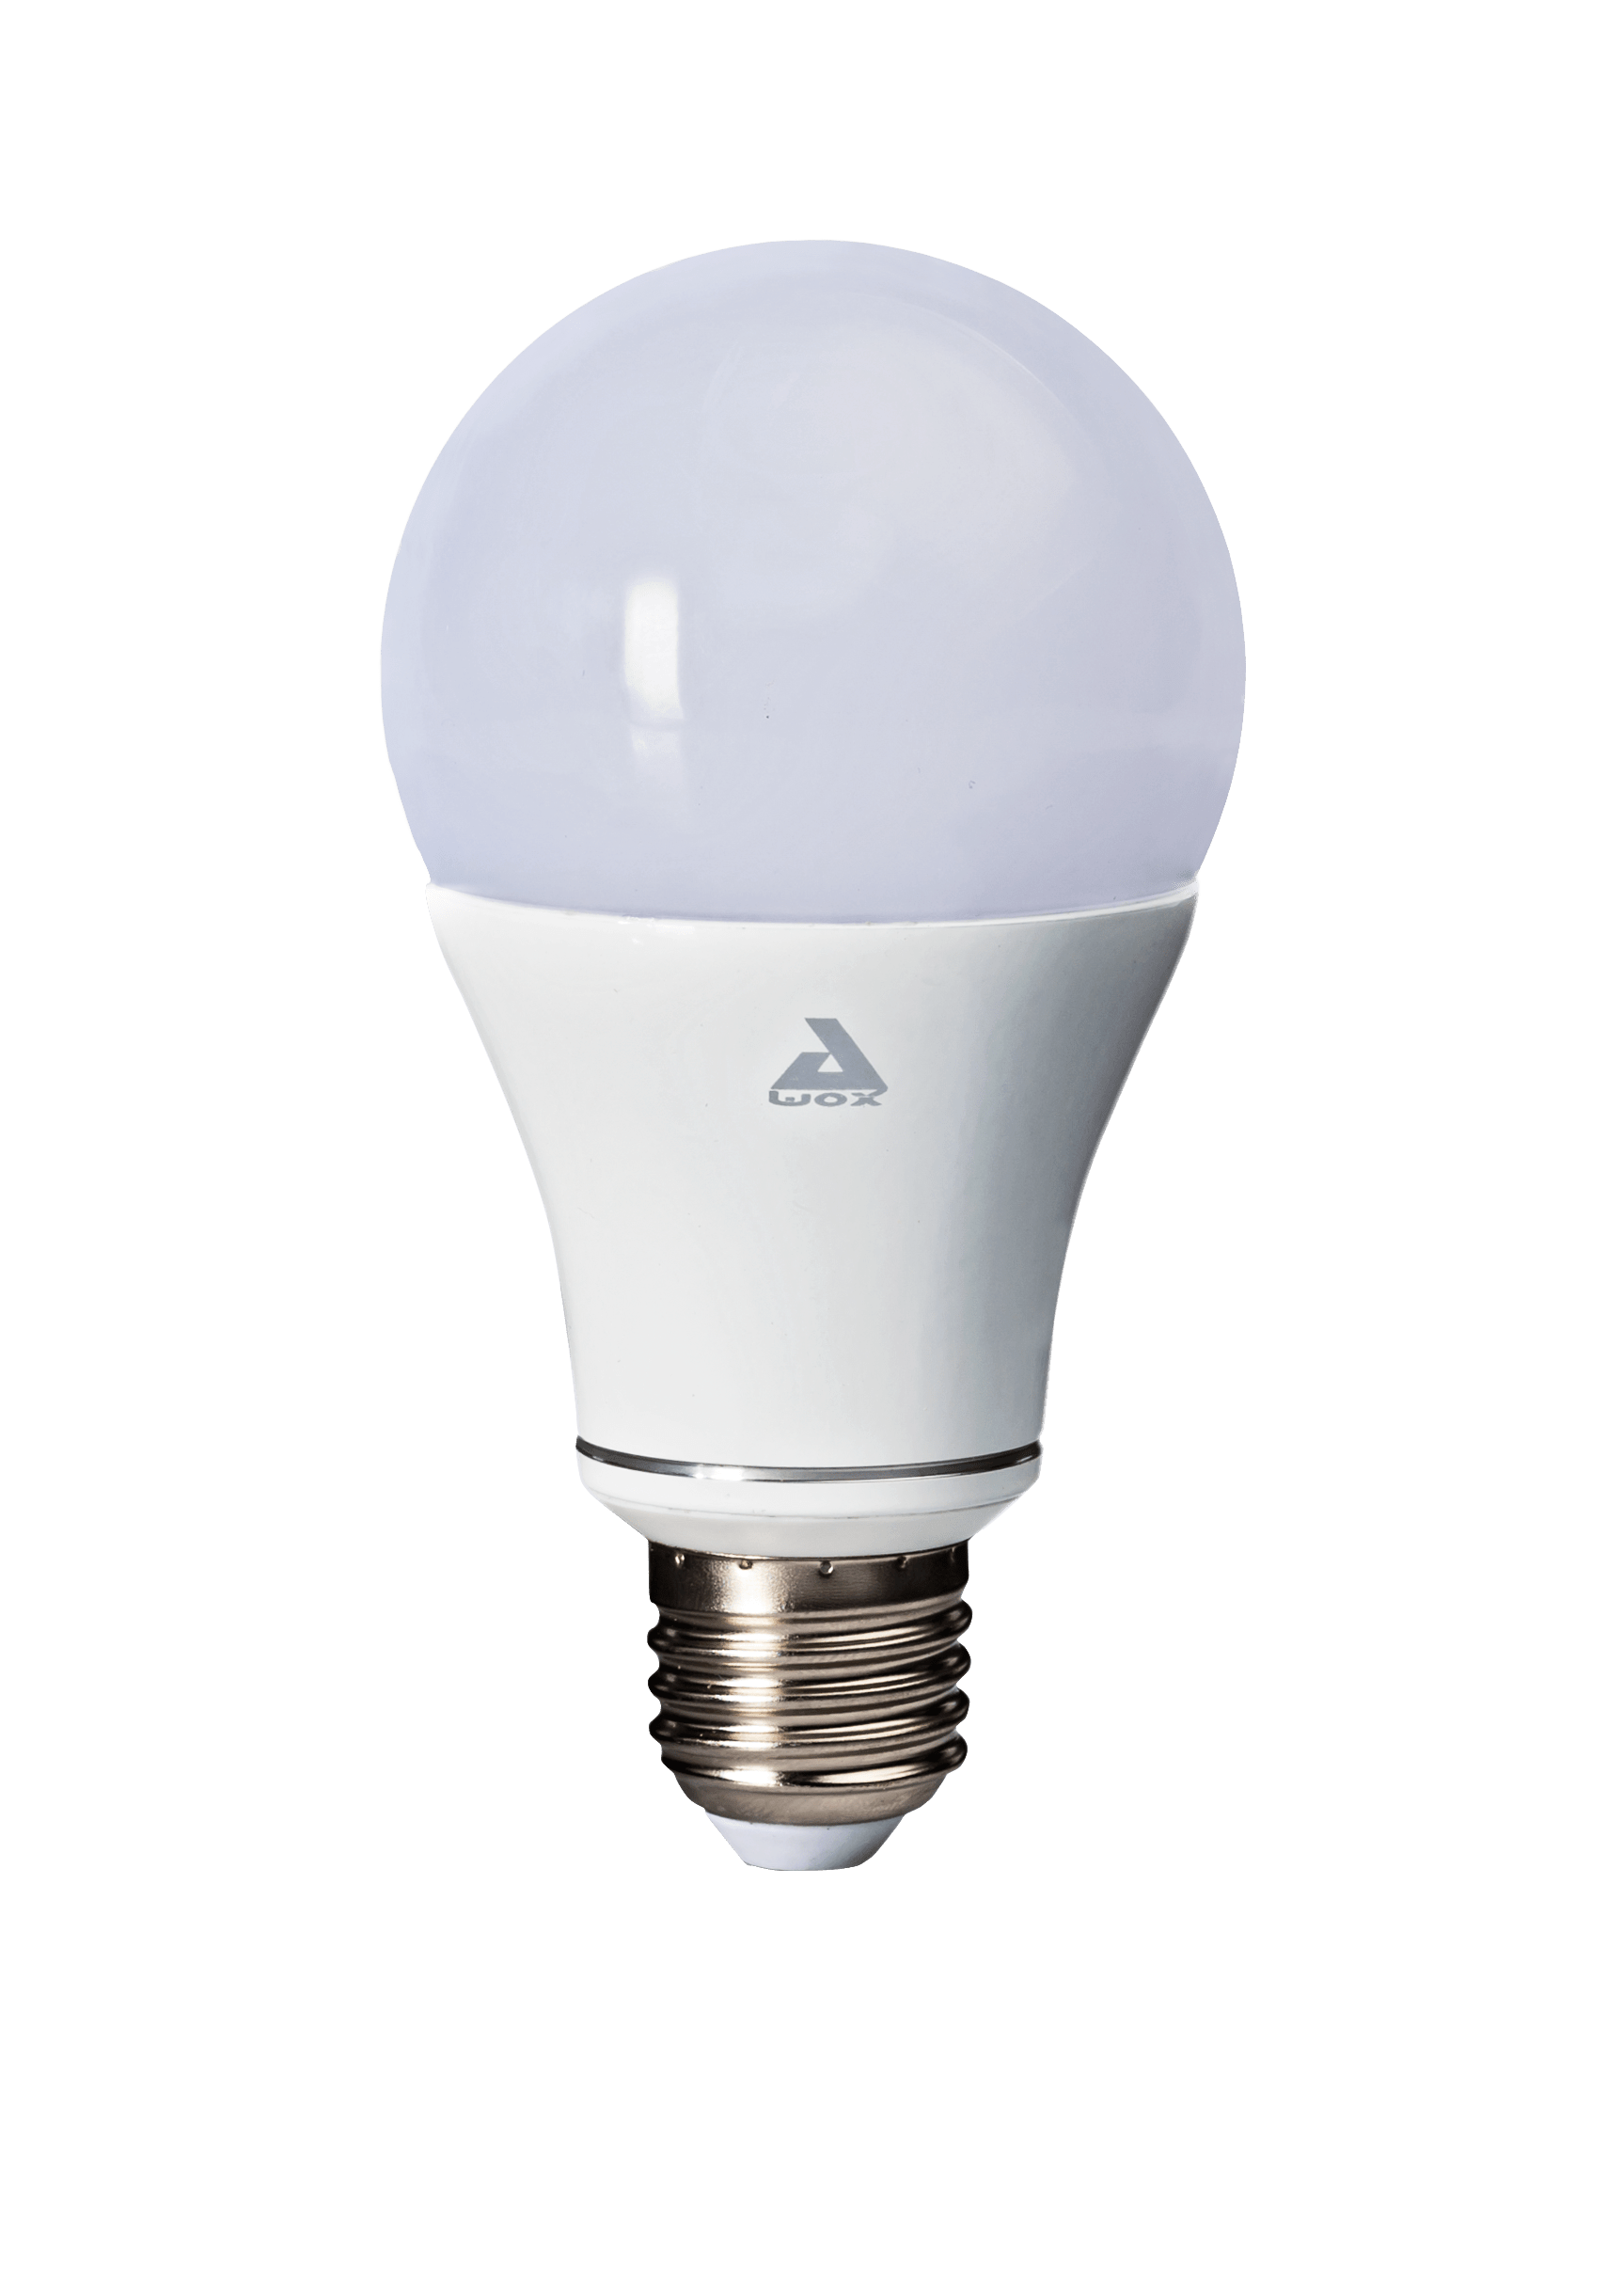 Glowing Light Bulb Png Smartled Led Connected Light Bulb White Lighting Awox